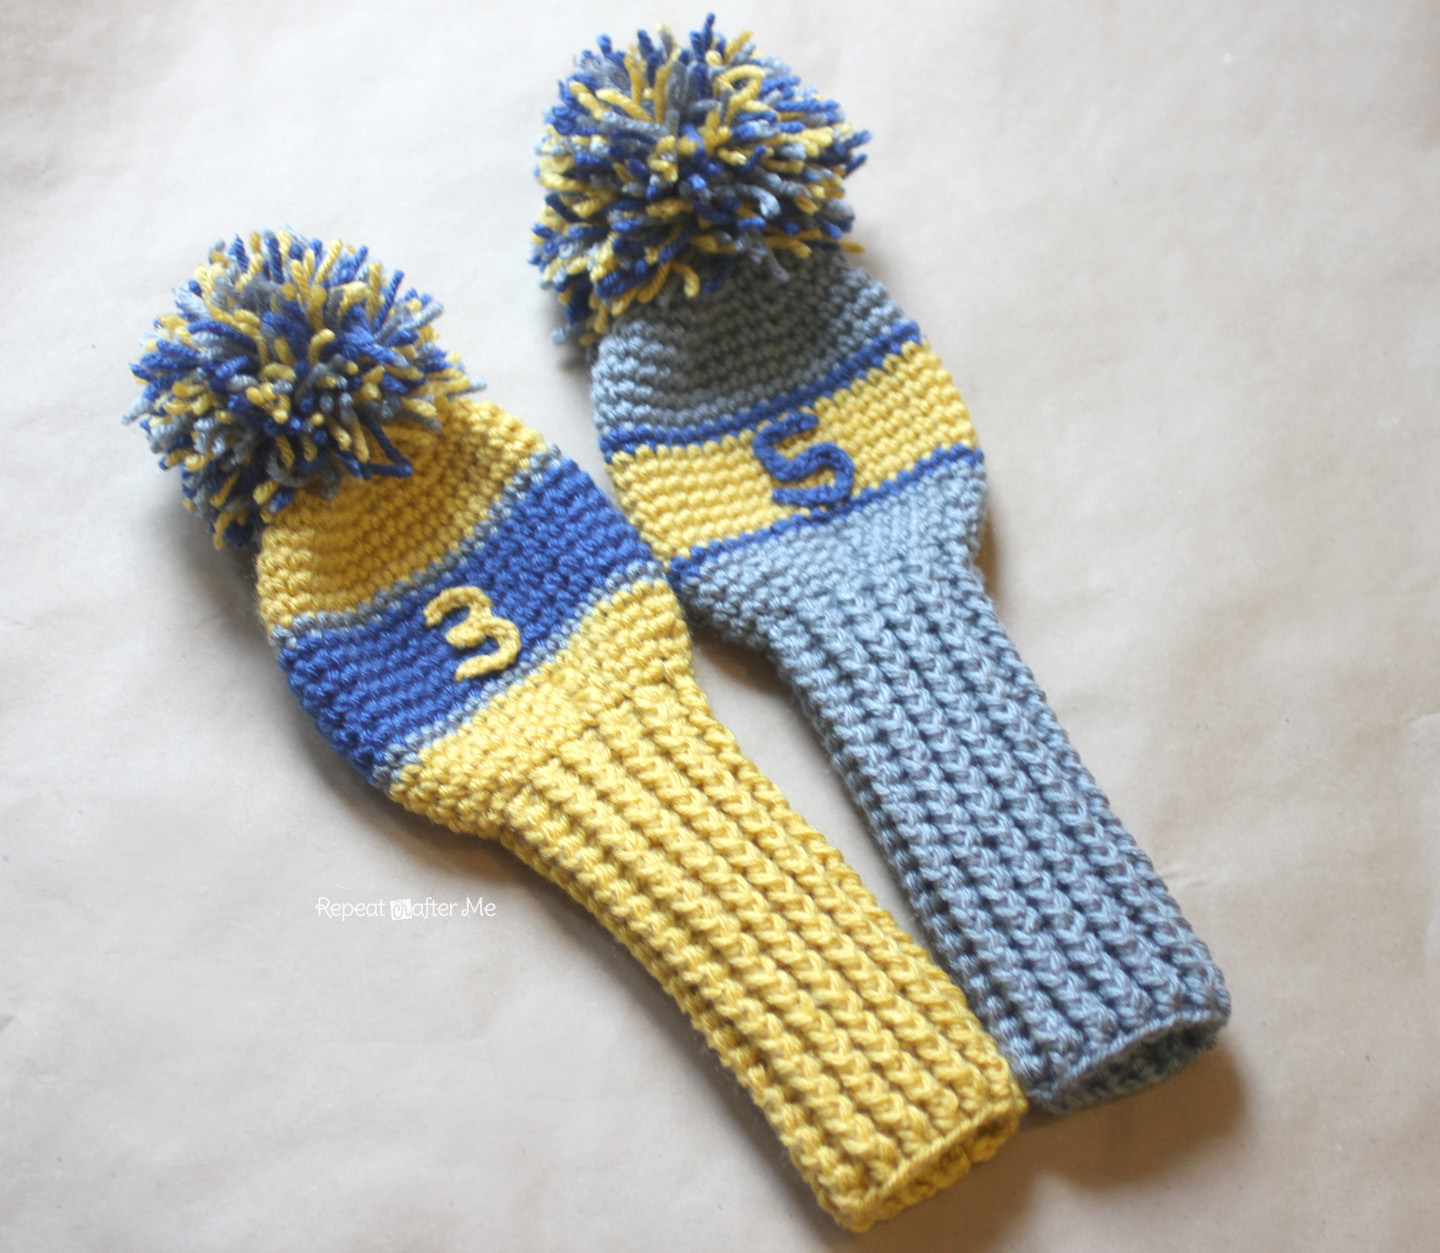 Knitting Patterns For Golf Club Headcovers : Crochet Golf Club Cover Pattern - Repeat Crafter Me